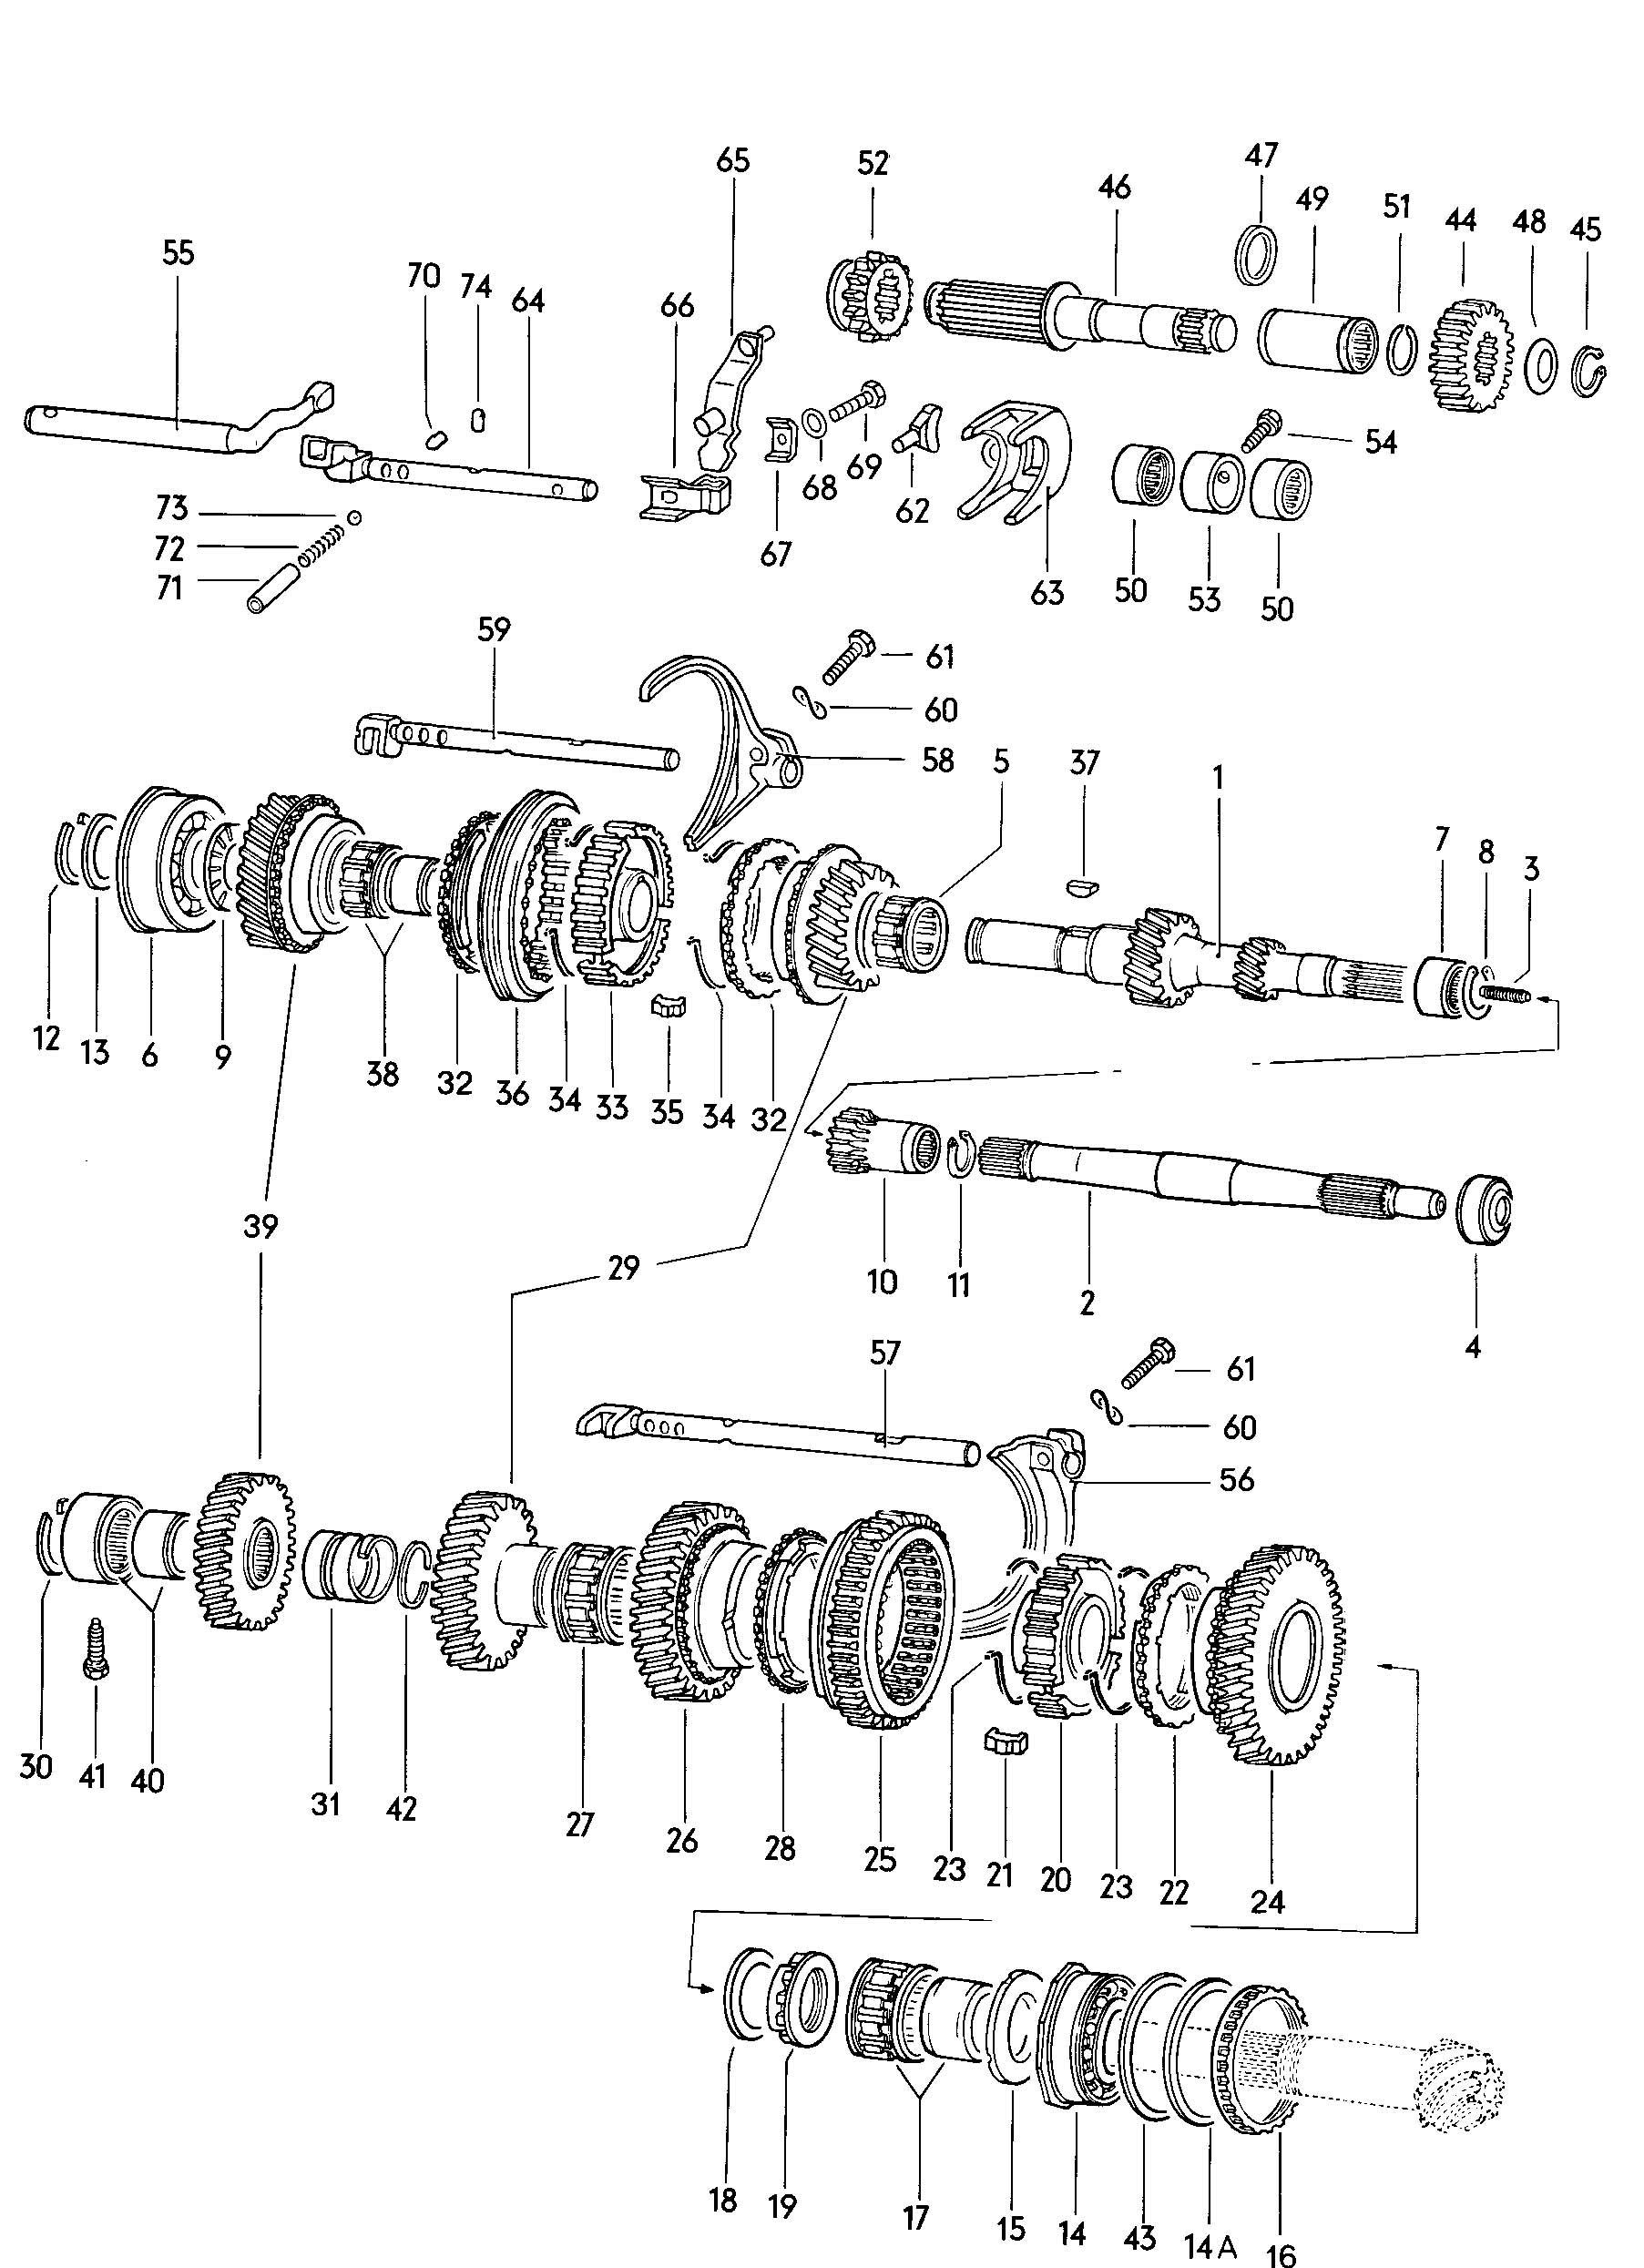 Diagram Of Car Gears Gears and Shafts Manual Transmission Volkswagen Vw Beetle